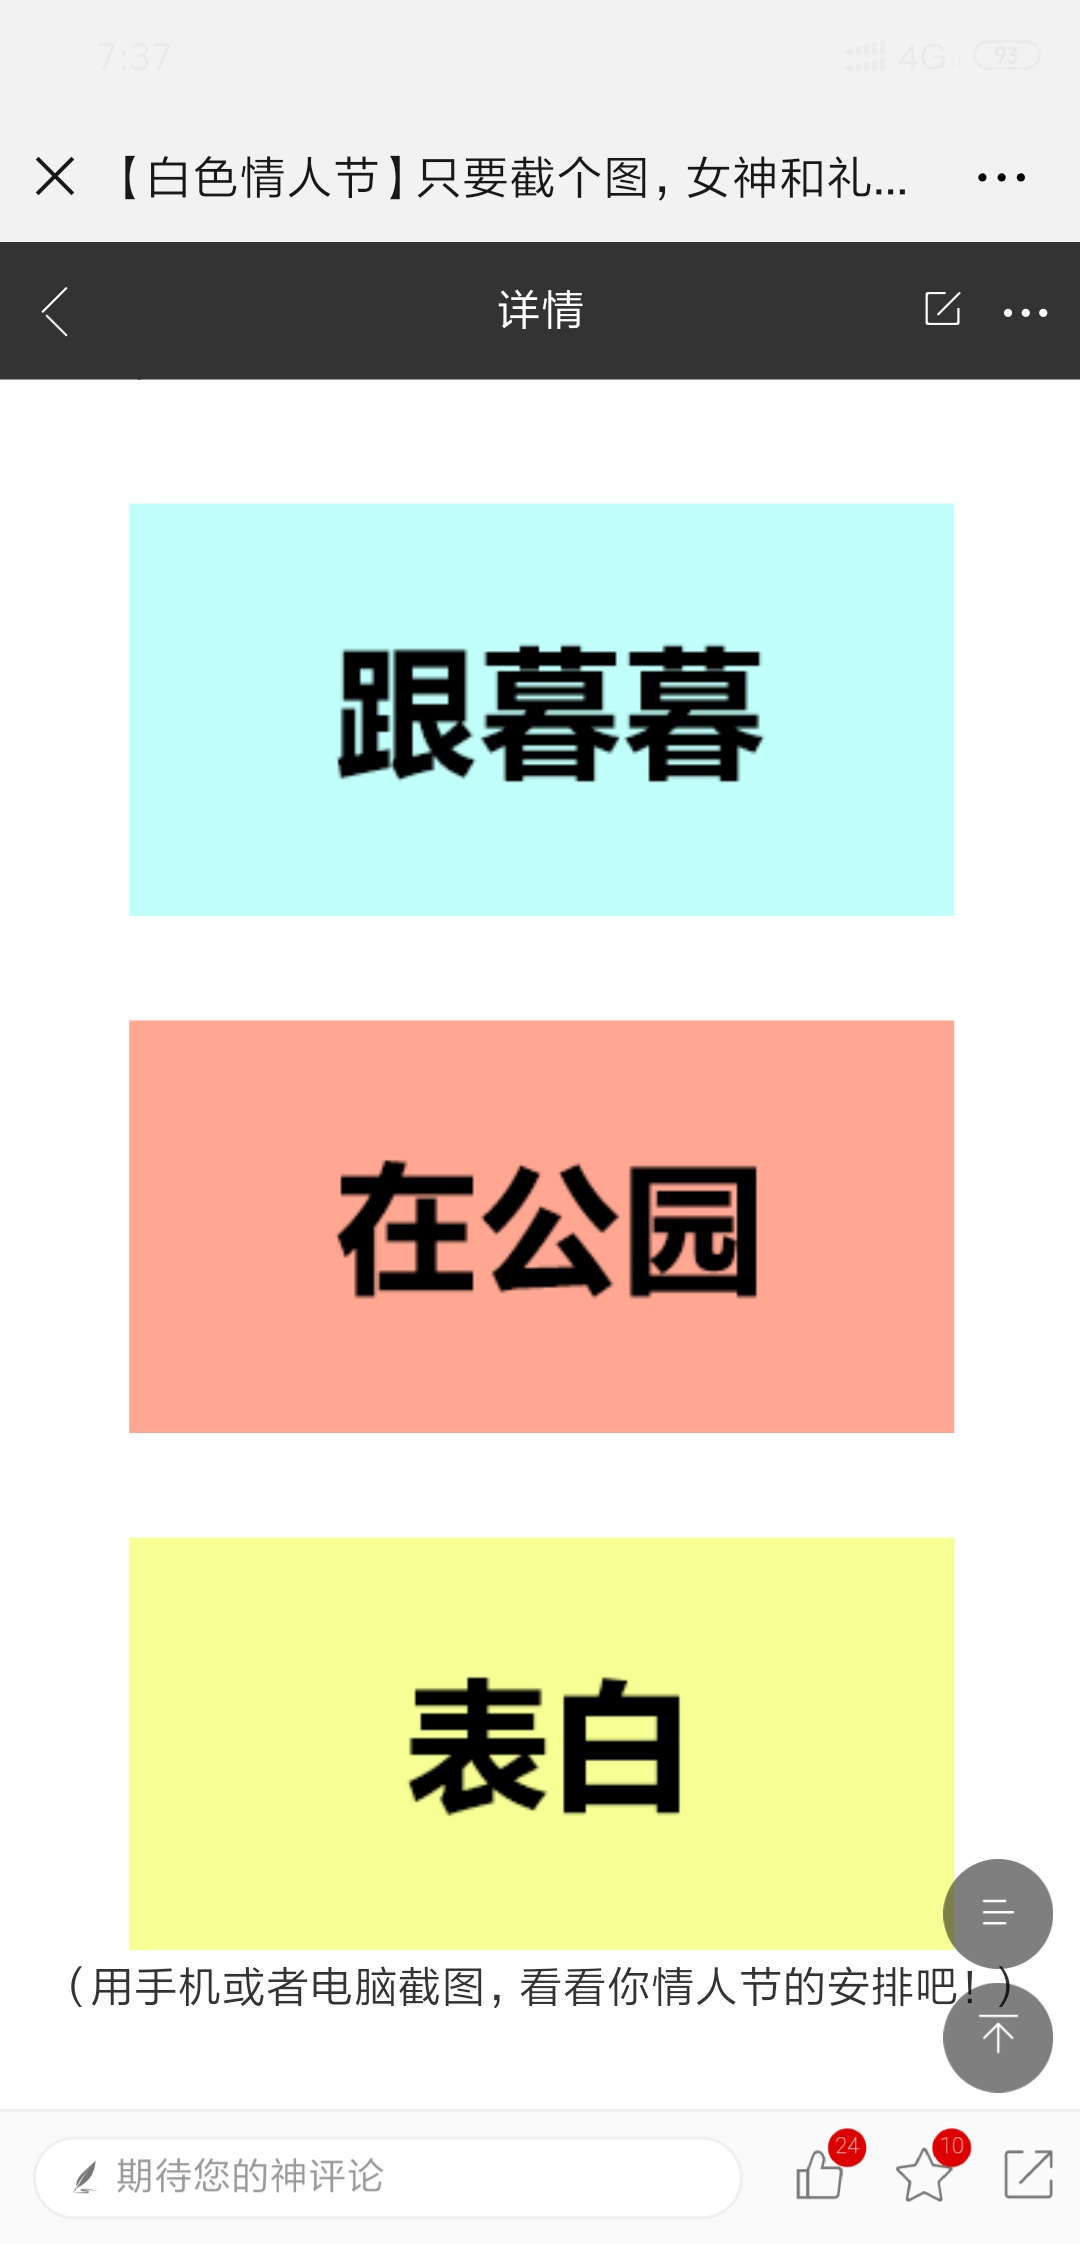 Screenshot_2019-03-14-07-37-50-589_com.tencent.mm.png